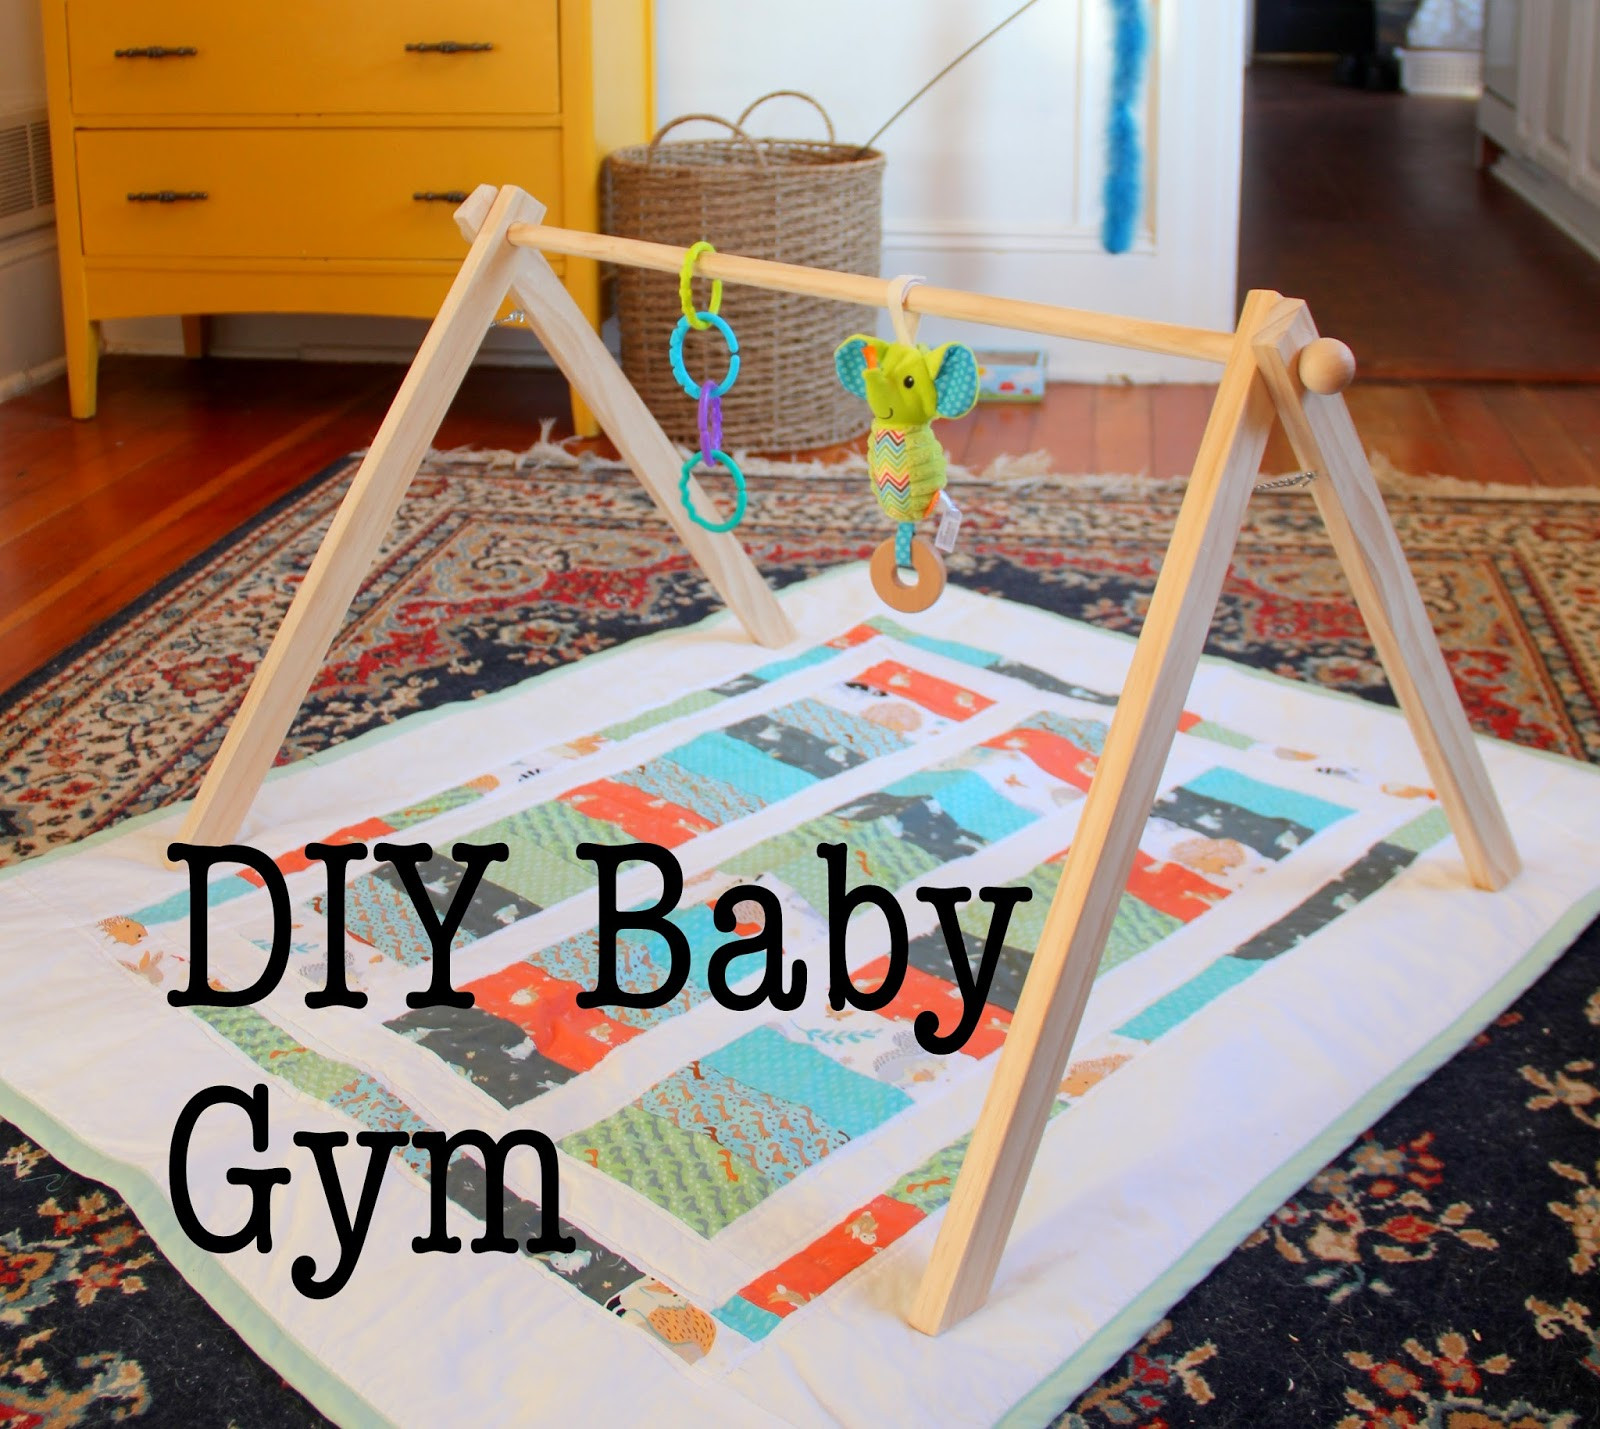 Baby Gym Diy  EAK A House DIY Baby Gym